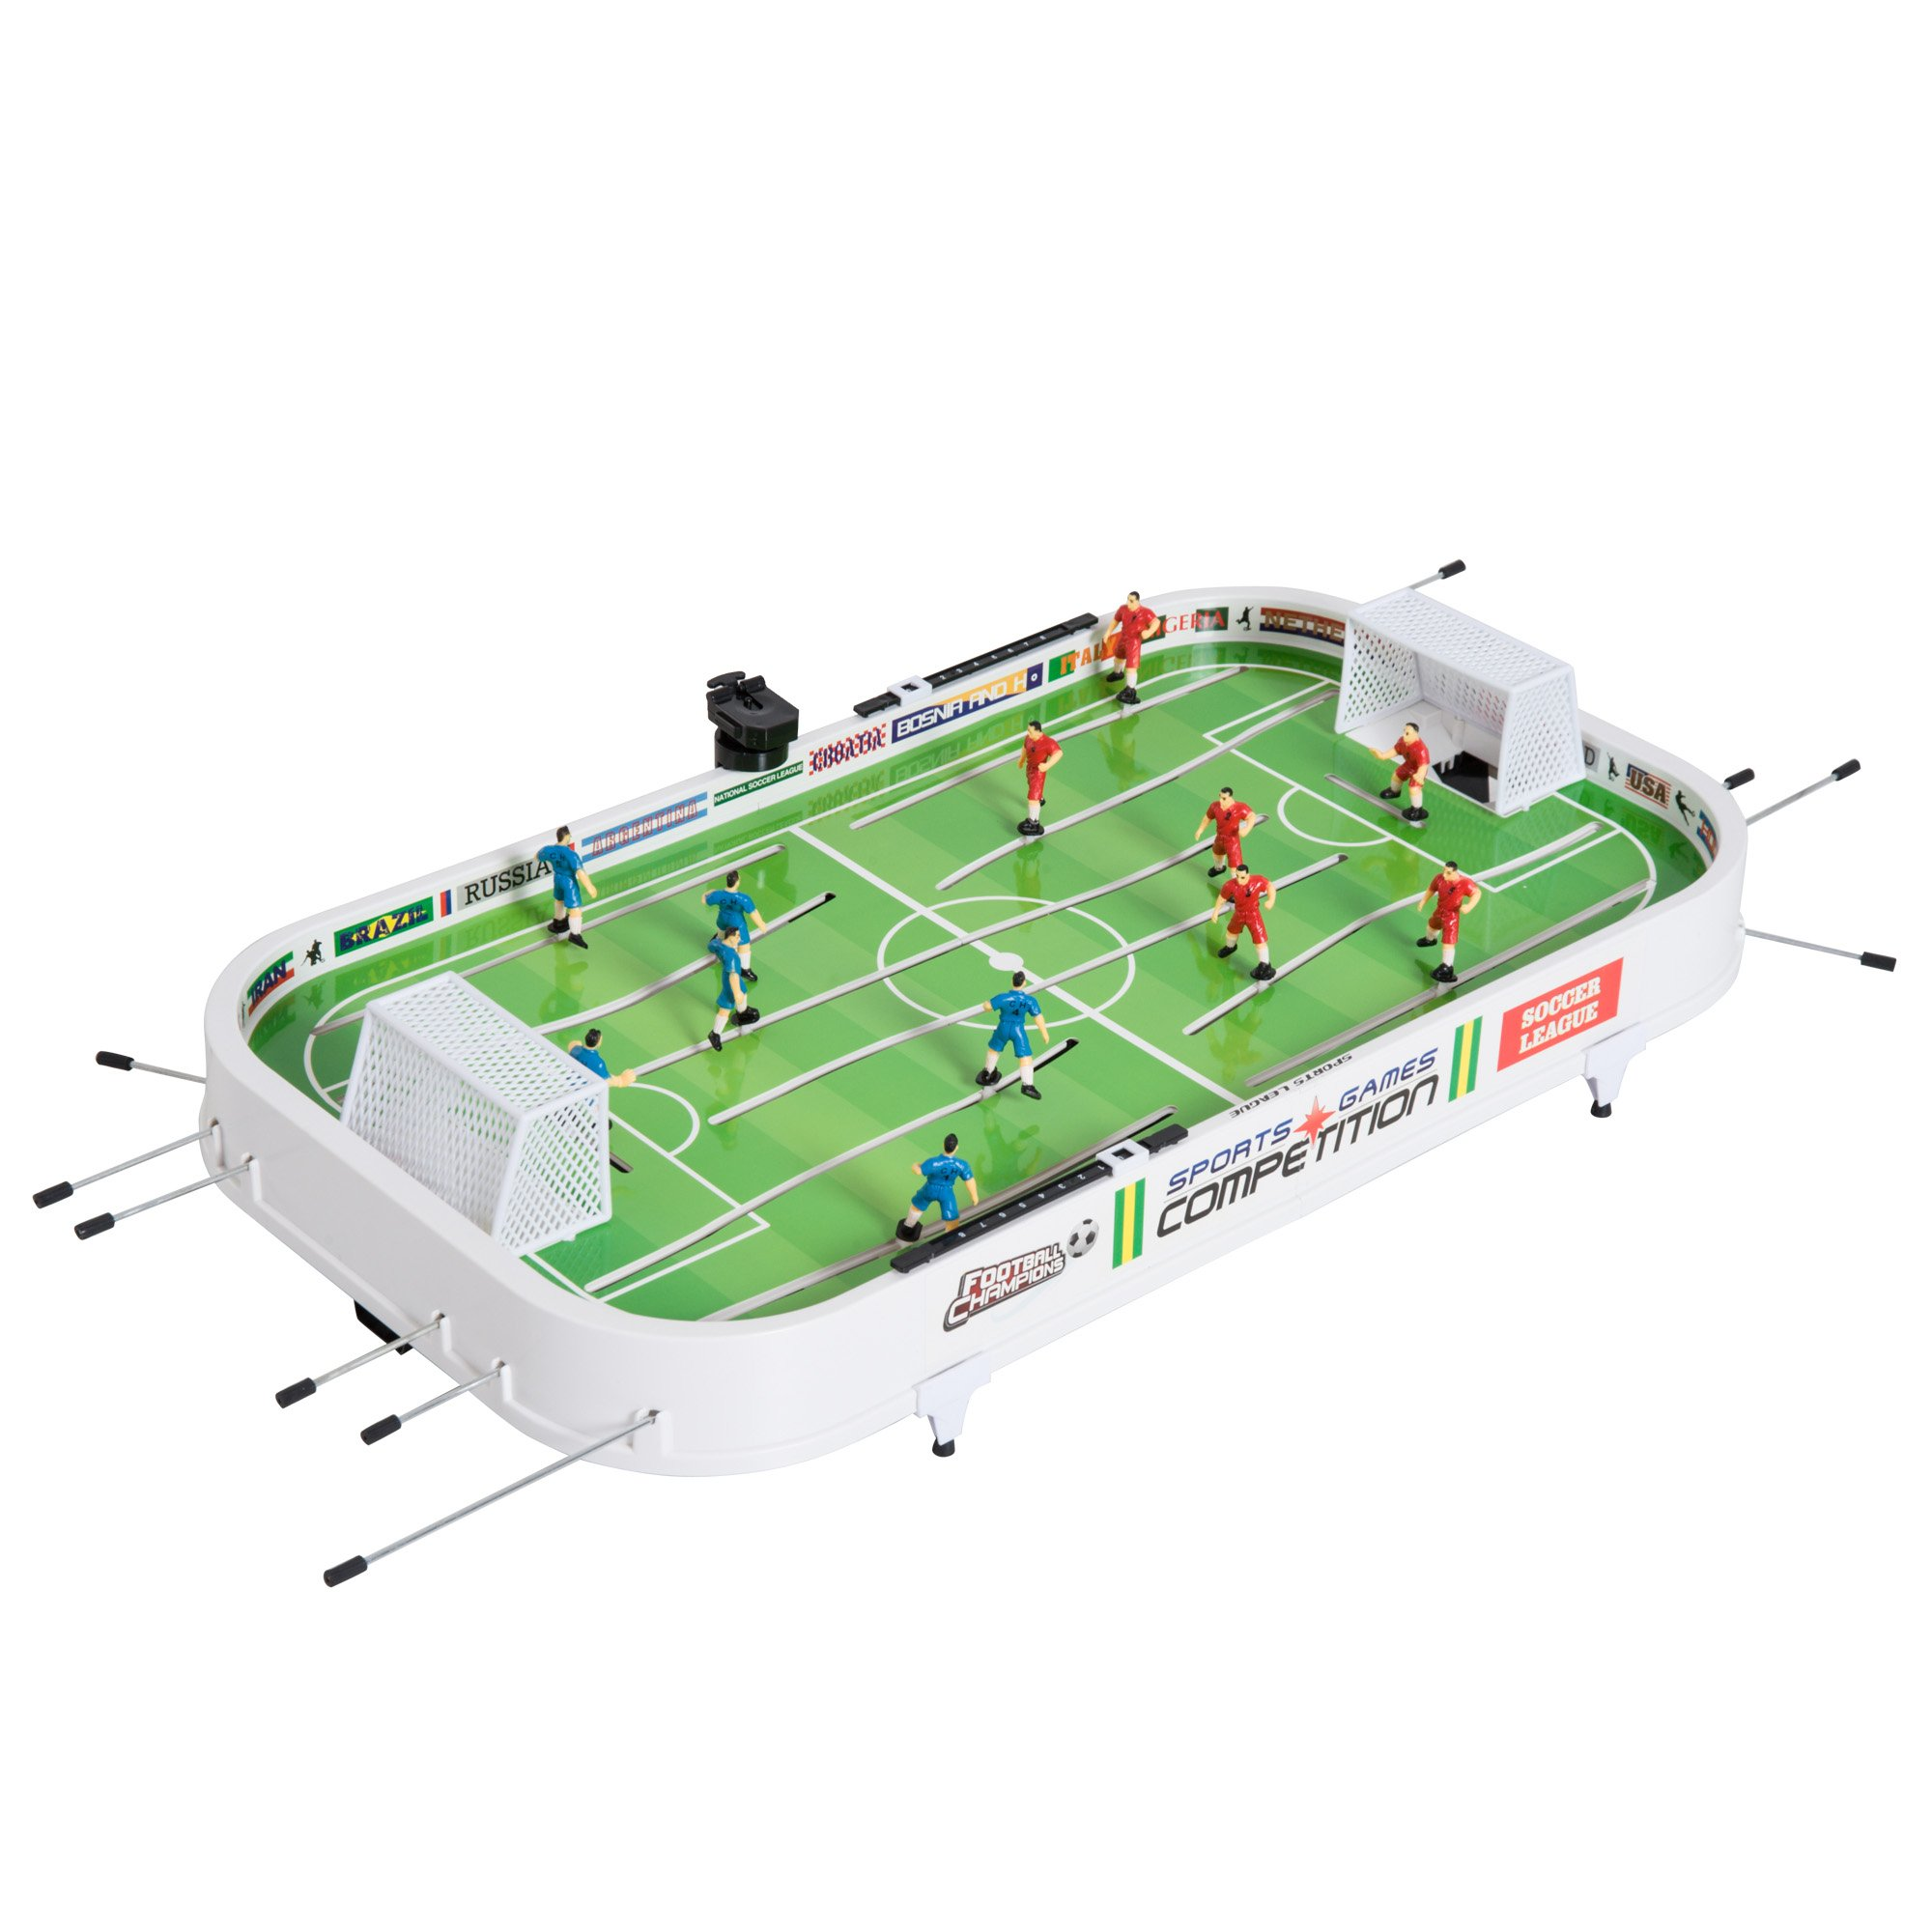 "Soozier 37"" Portable Mini Tabletop Foosball Table Football Soccer Game for Kids - Green/White"